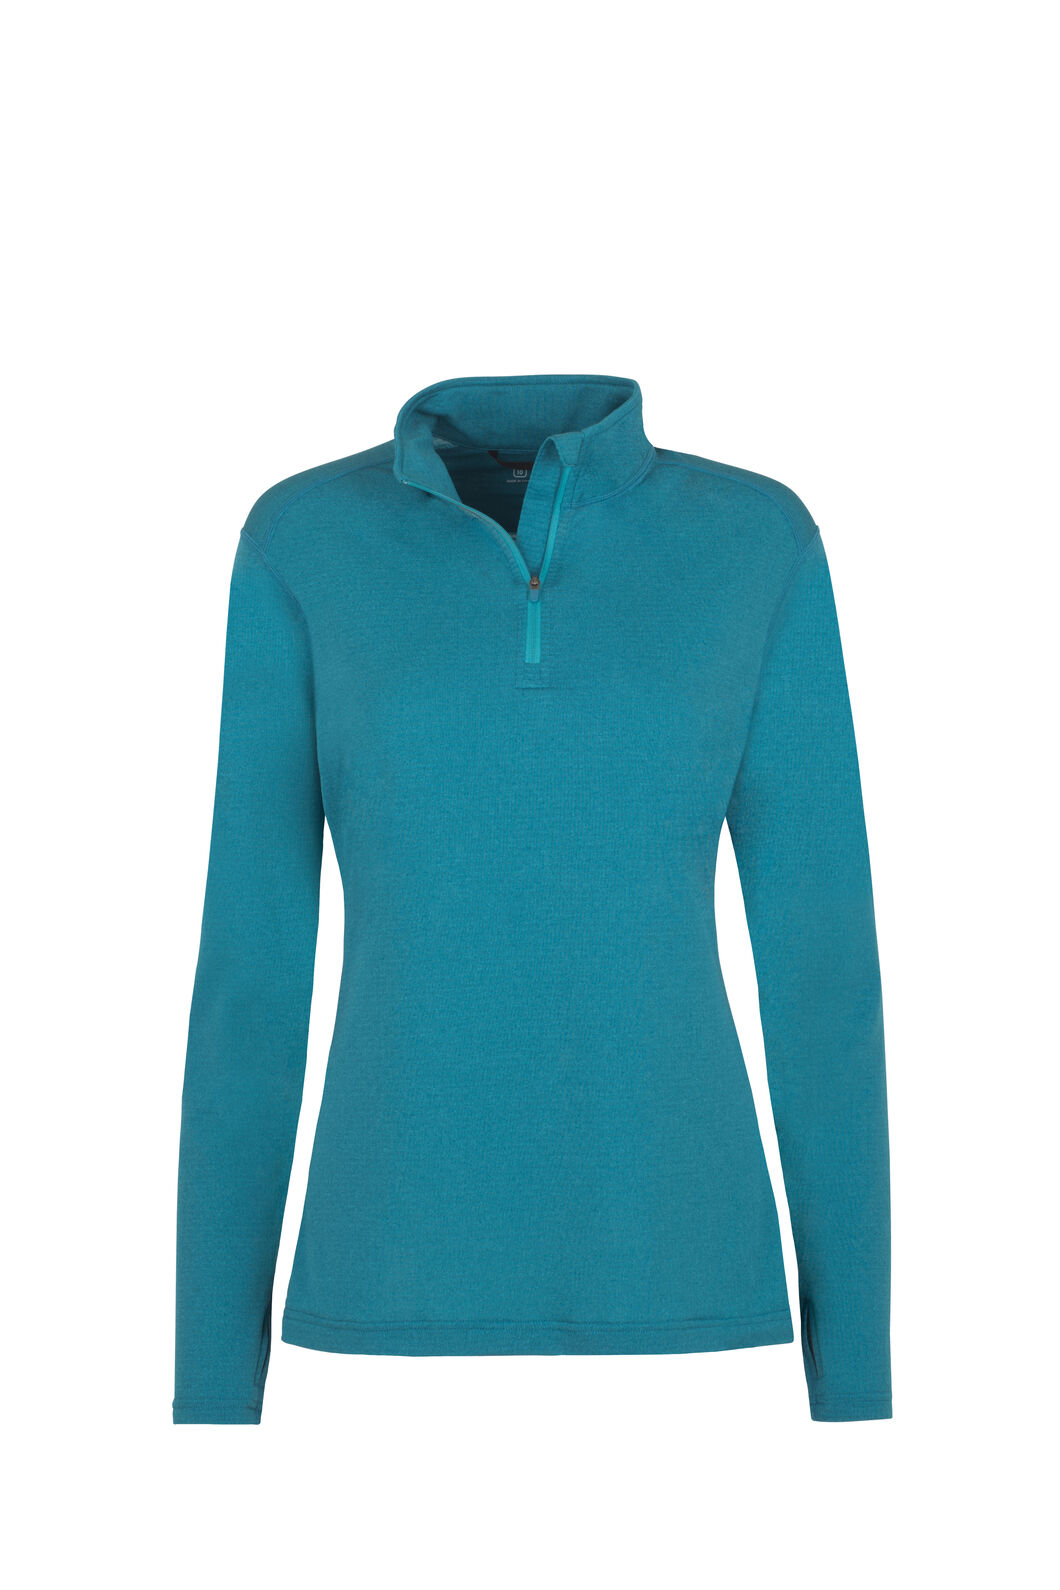 Macpac ProThermal Top - Women's, Ocean Depths, hi-res